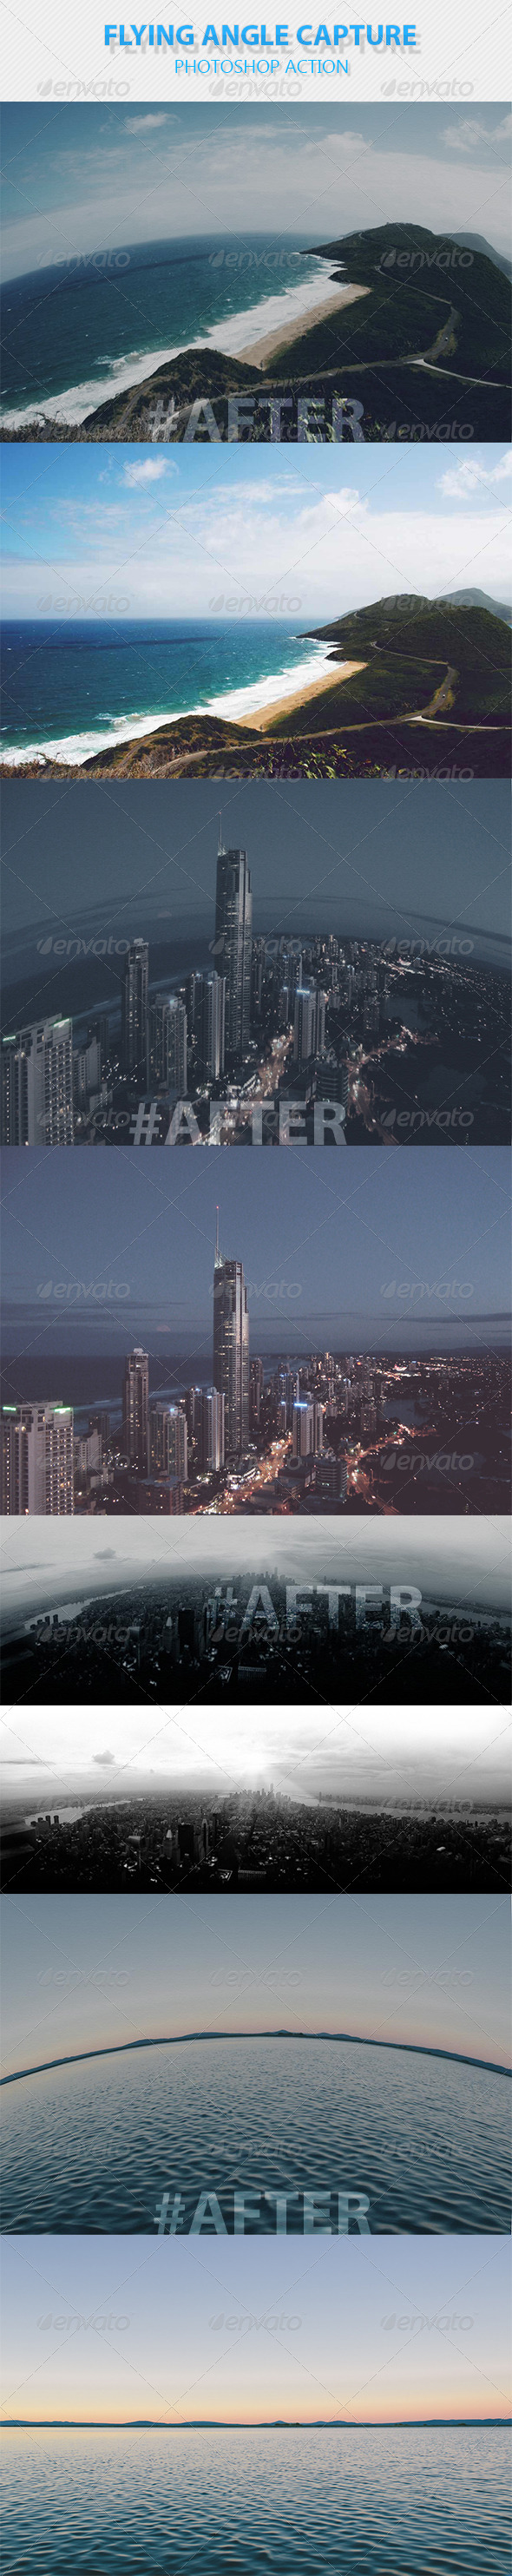 GraphicRiver Flying Angle Capture Photoshop Action 8431208